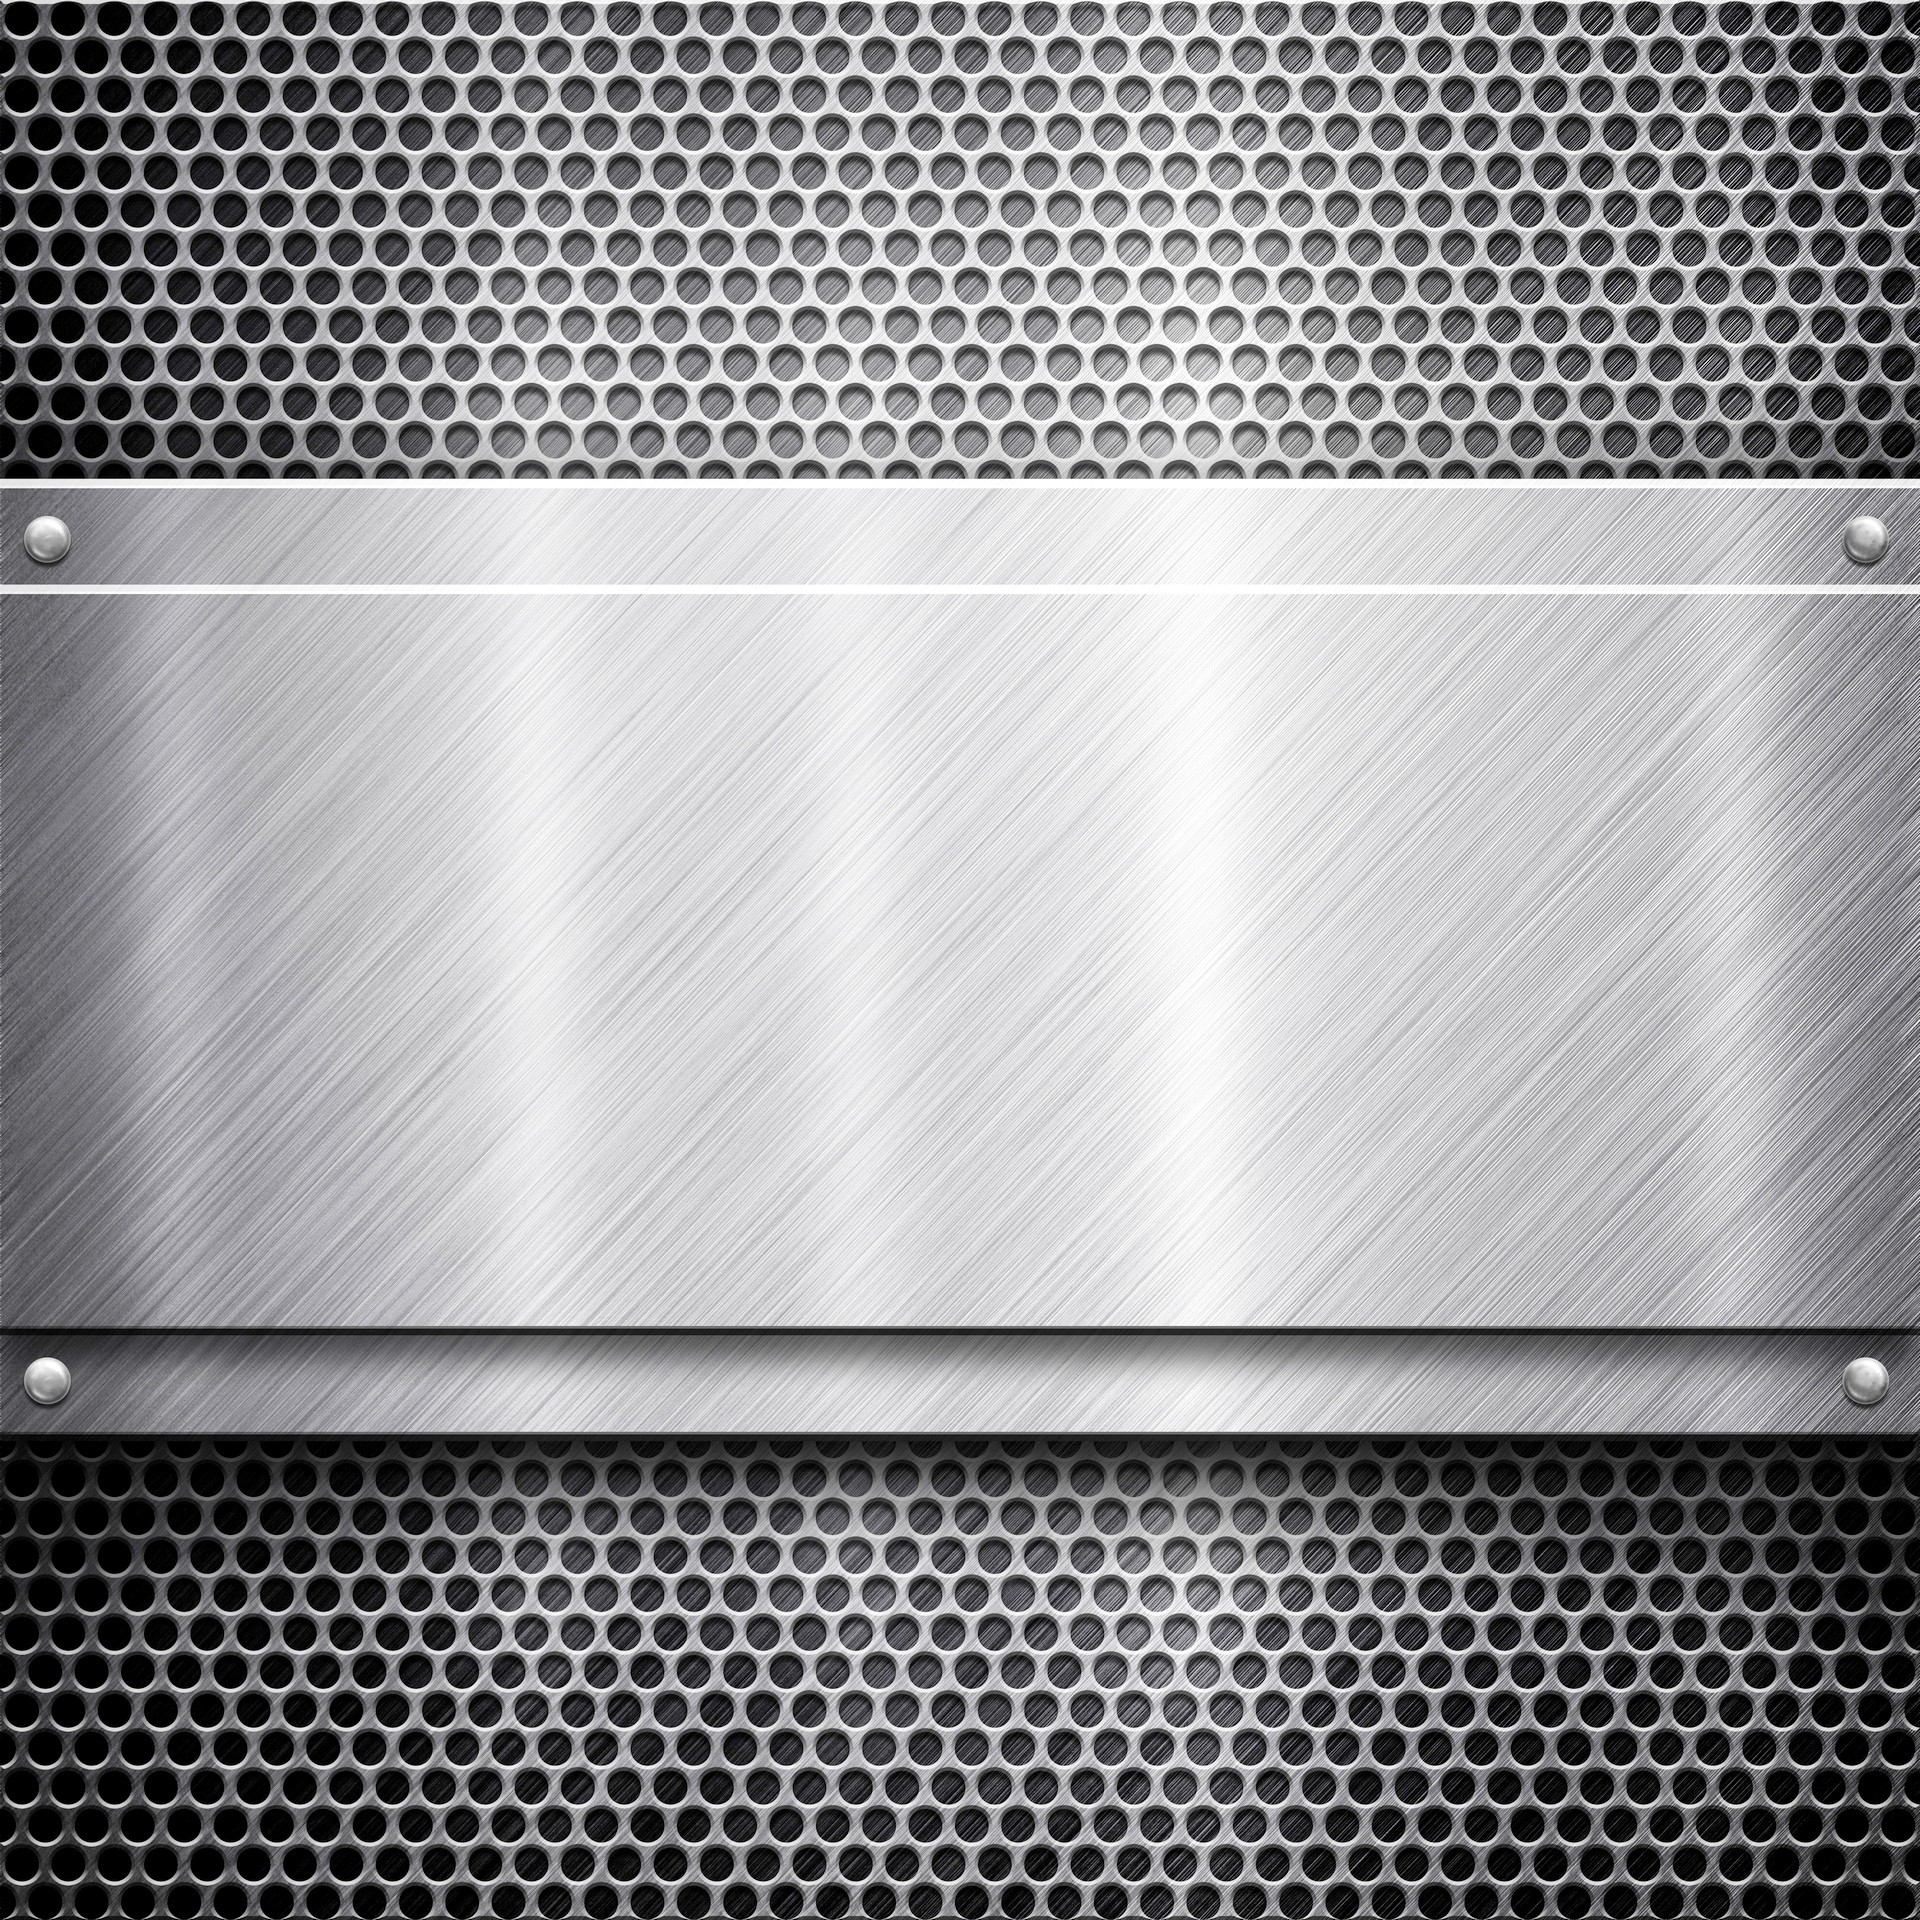 Res: 1920x1920, Silver images Silver grid HD wallpaper and background photos